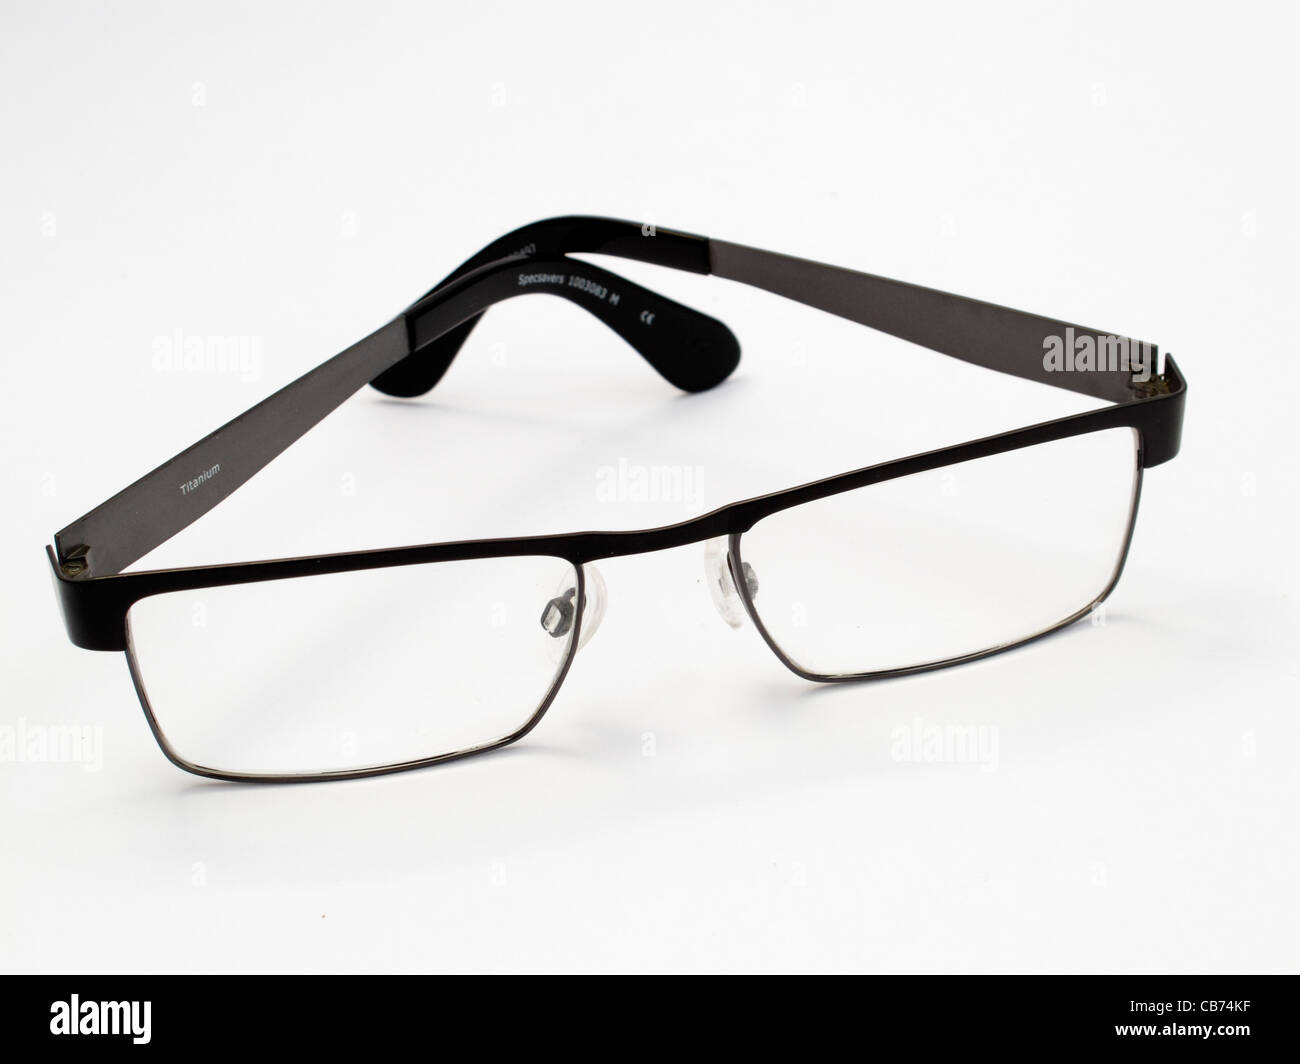 6c0dda5b28c4 Man s vocational varifocal spectacles modern design black titanium frame on  a white background